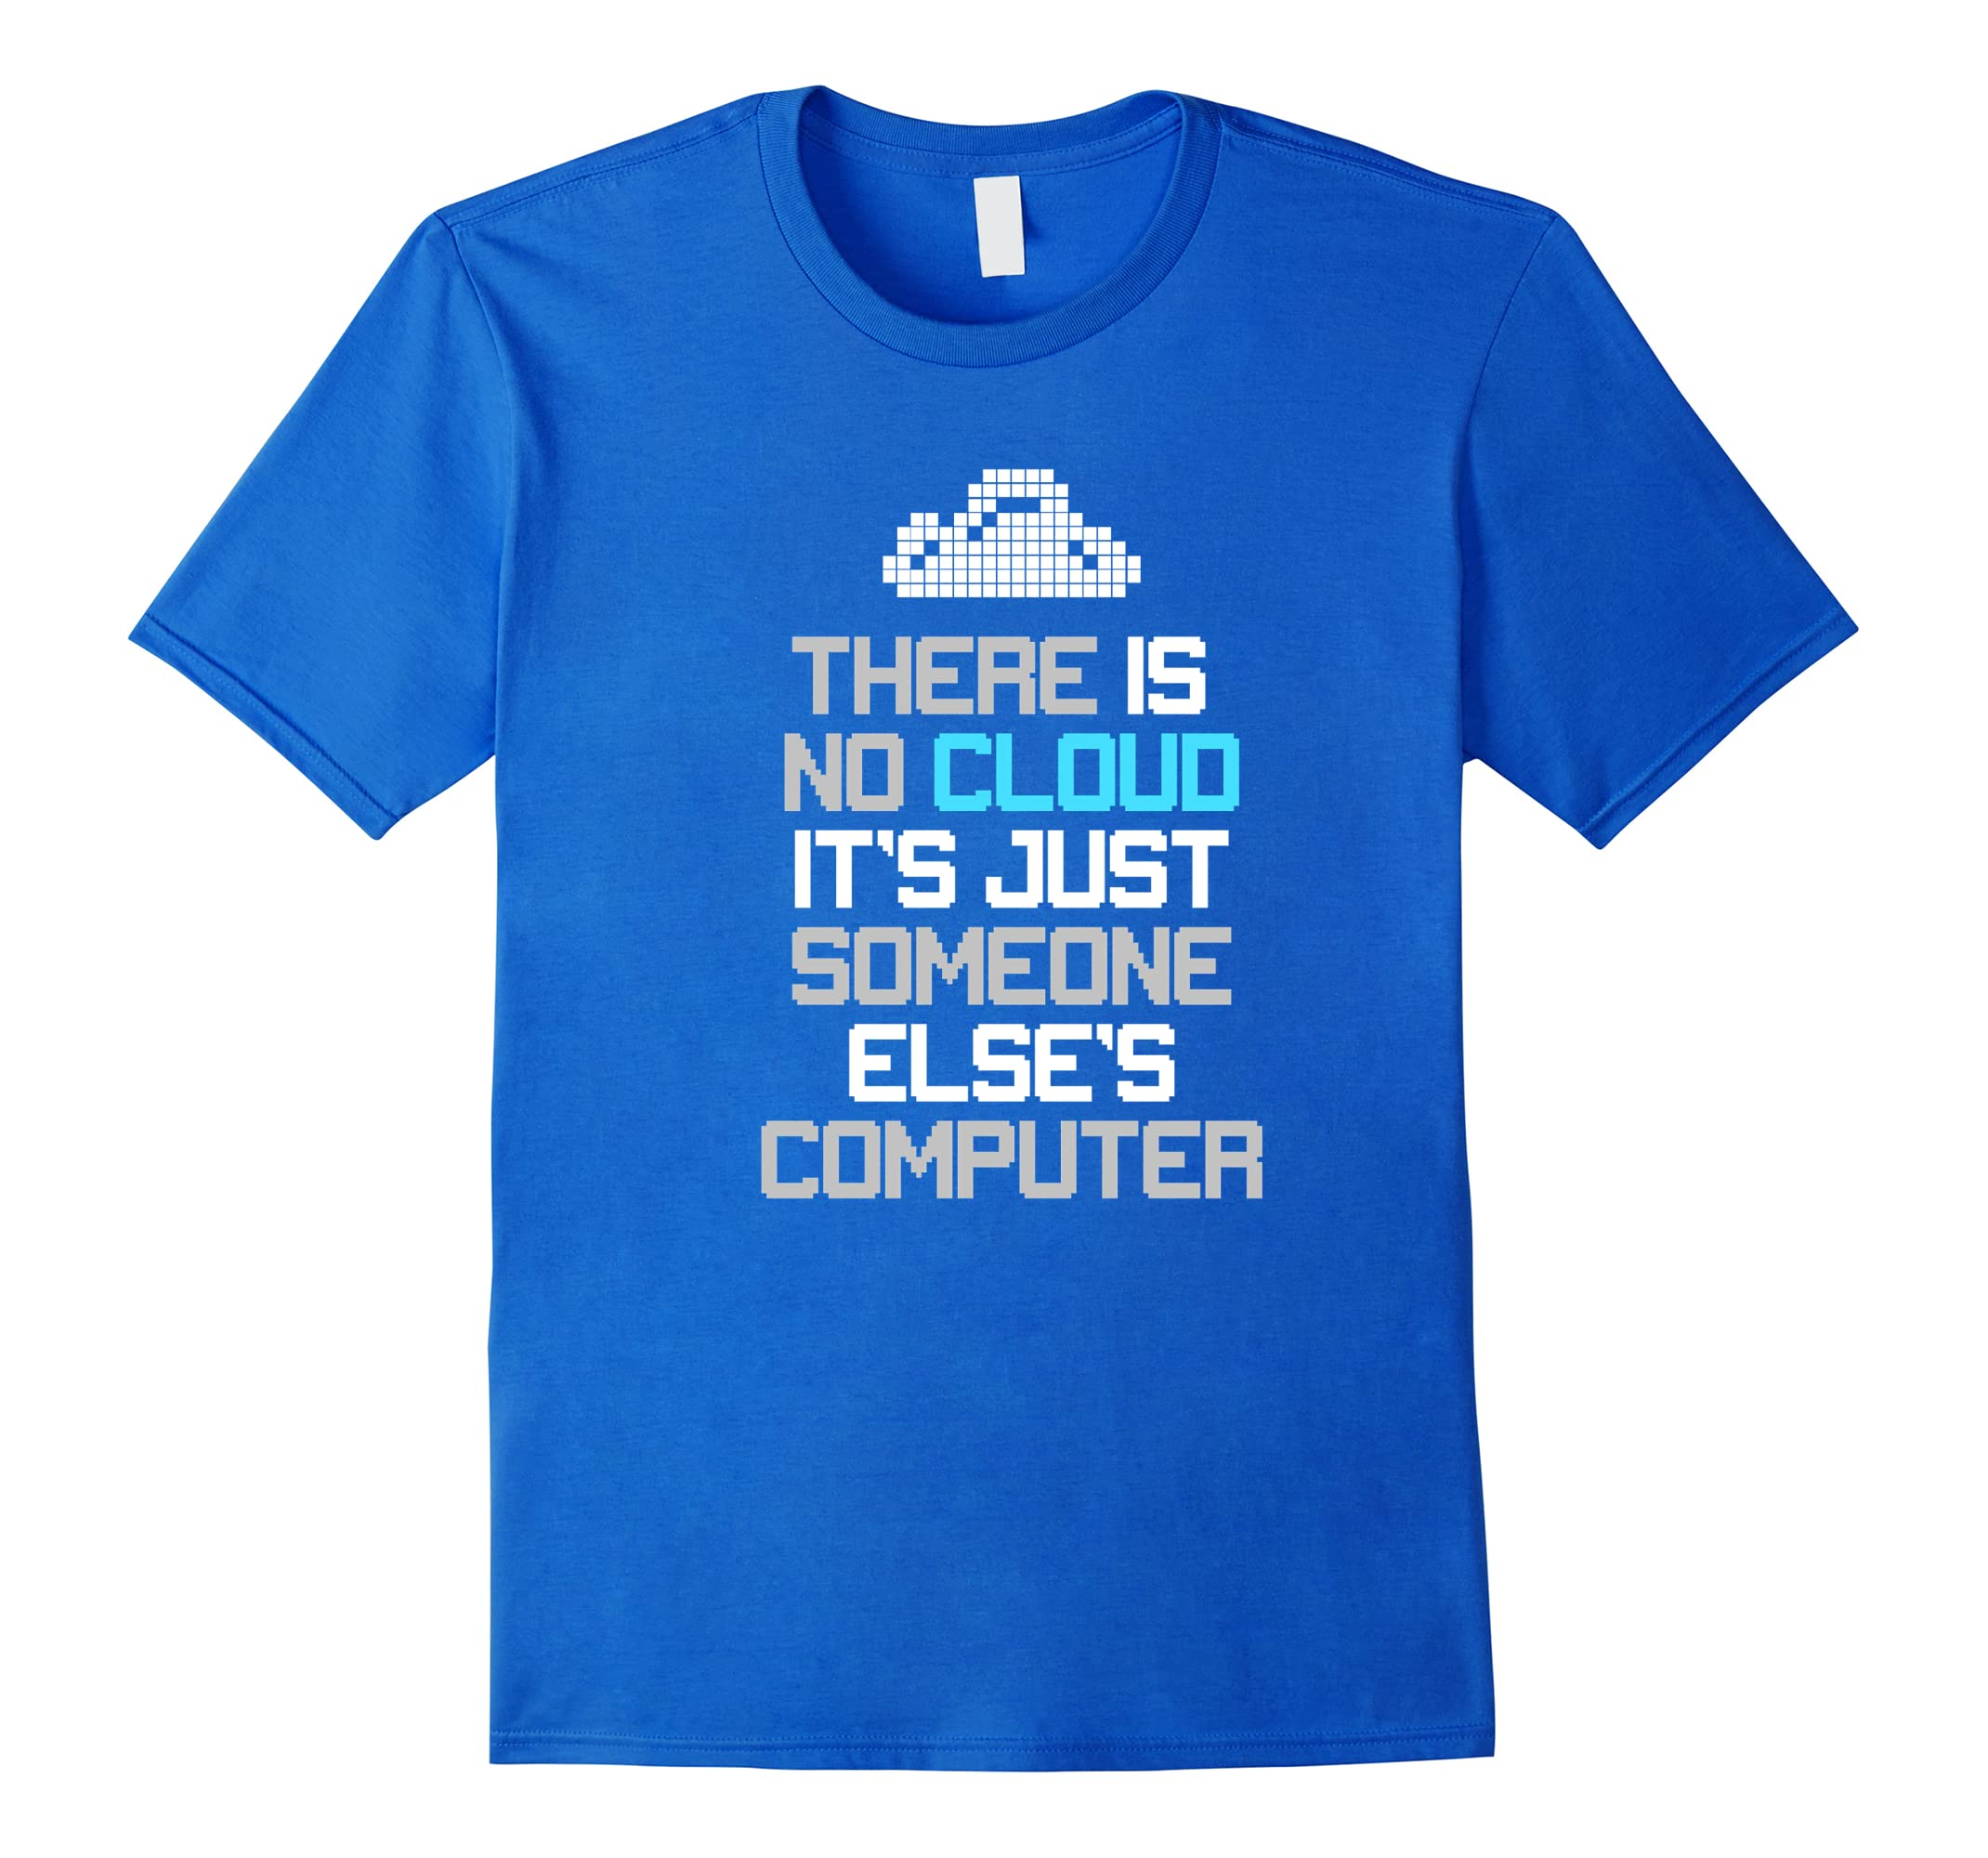 There is no cloud t-shirt tech Humor There is no cloud tee-ah my shirt one  gift